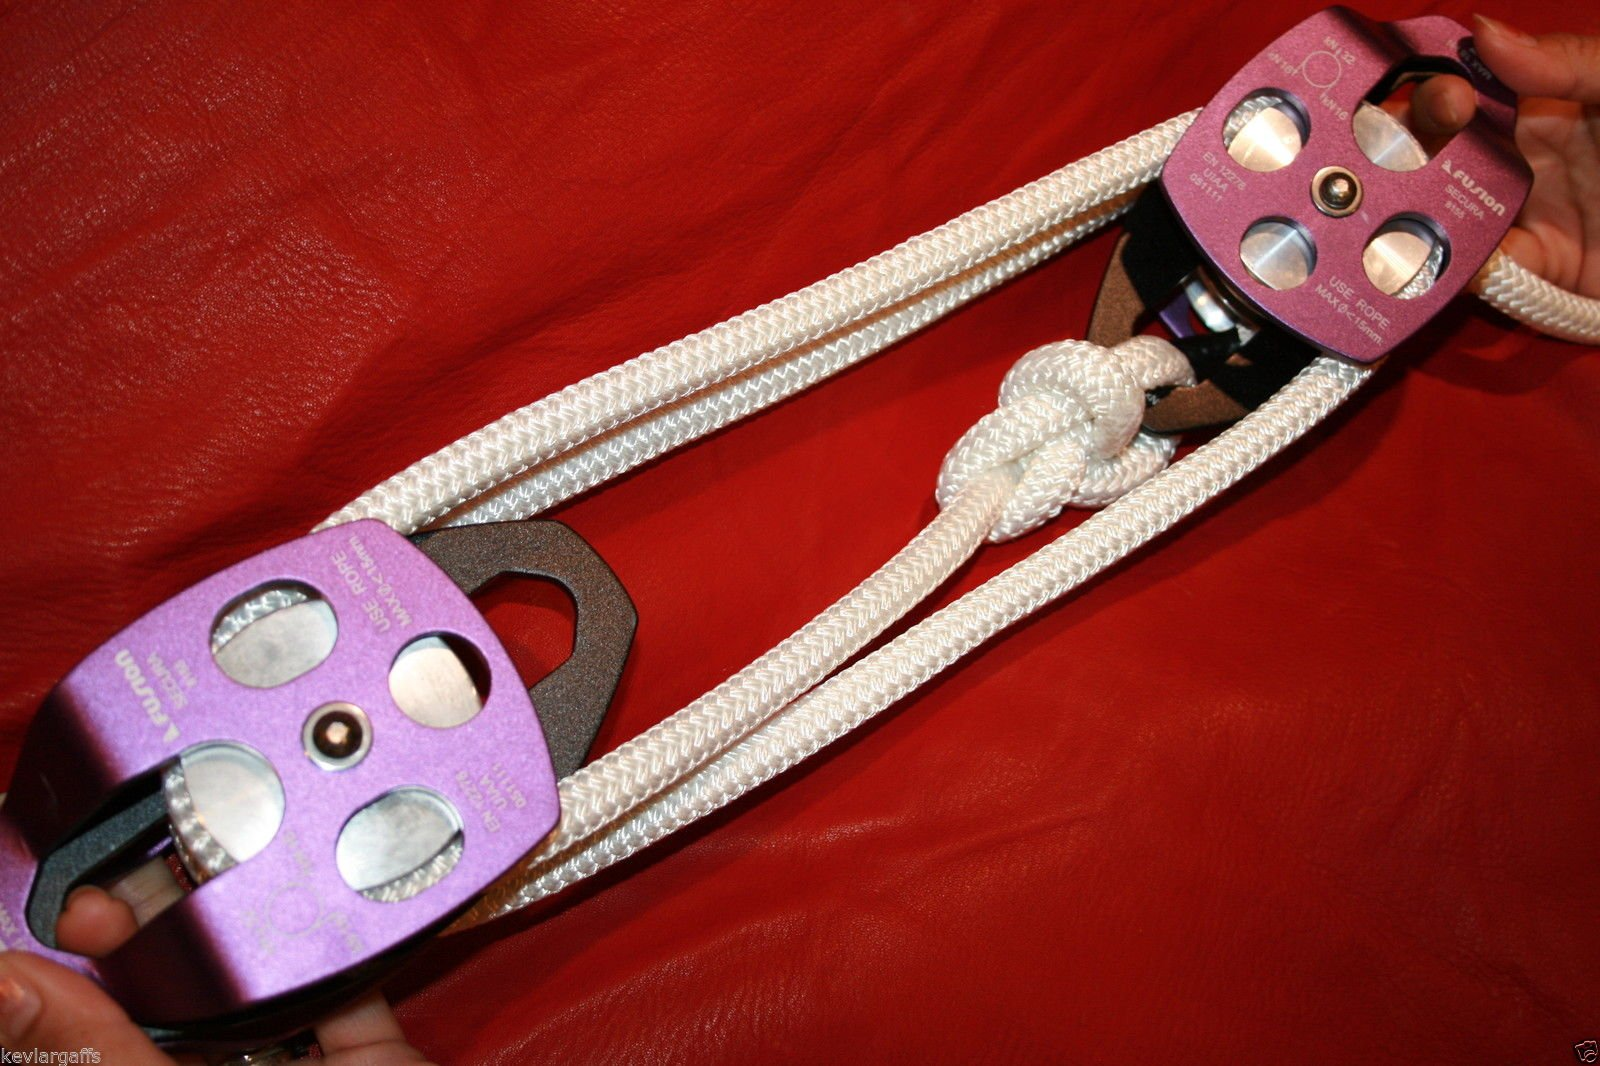 Twin sheave block and tackle 7500Lb pulley system 100 ft 1/2 Double Braid Rope by toonets (Image #1)